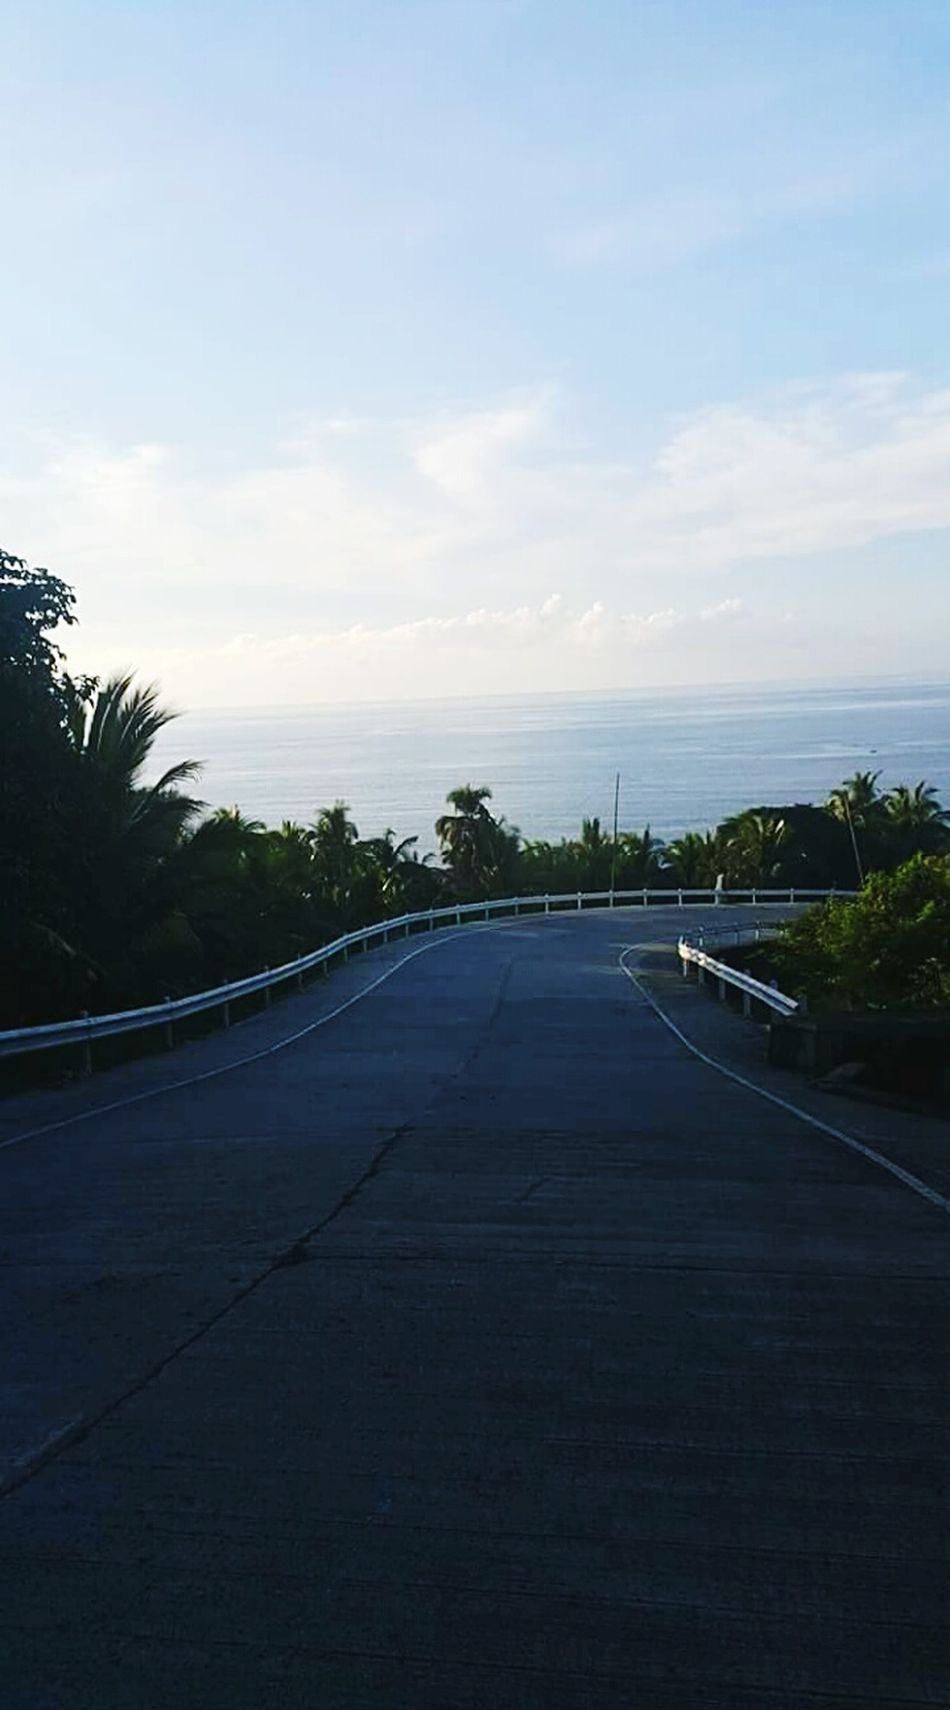 Road to you.😍 Streetphotography Outdoor No People Tree Cloud - Sky Eyeem Philippines Sweetserenity Eyeem Collections Above Sea Level Airbreeze Sky_collection First Eyeem Photo Bestmoment Manmadescape Beautifulmoment Peaceful Street